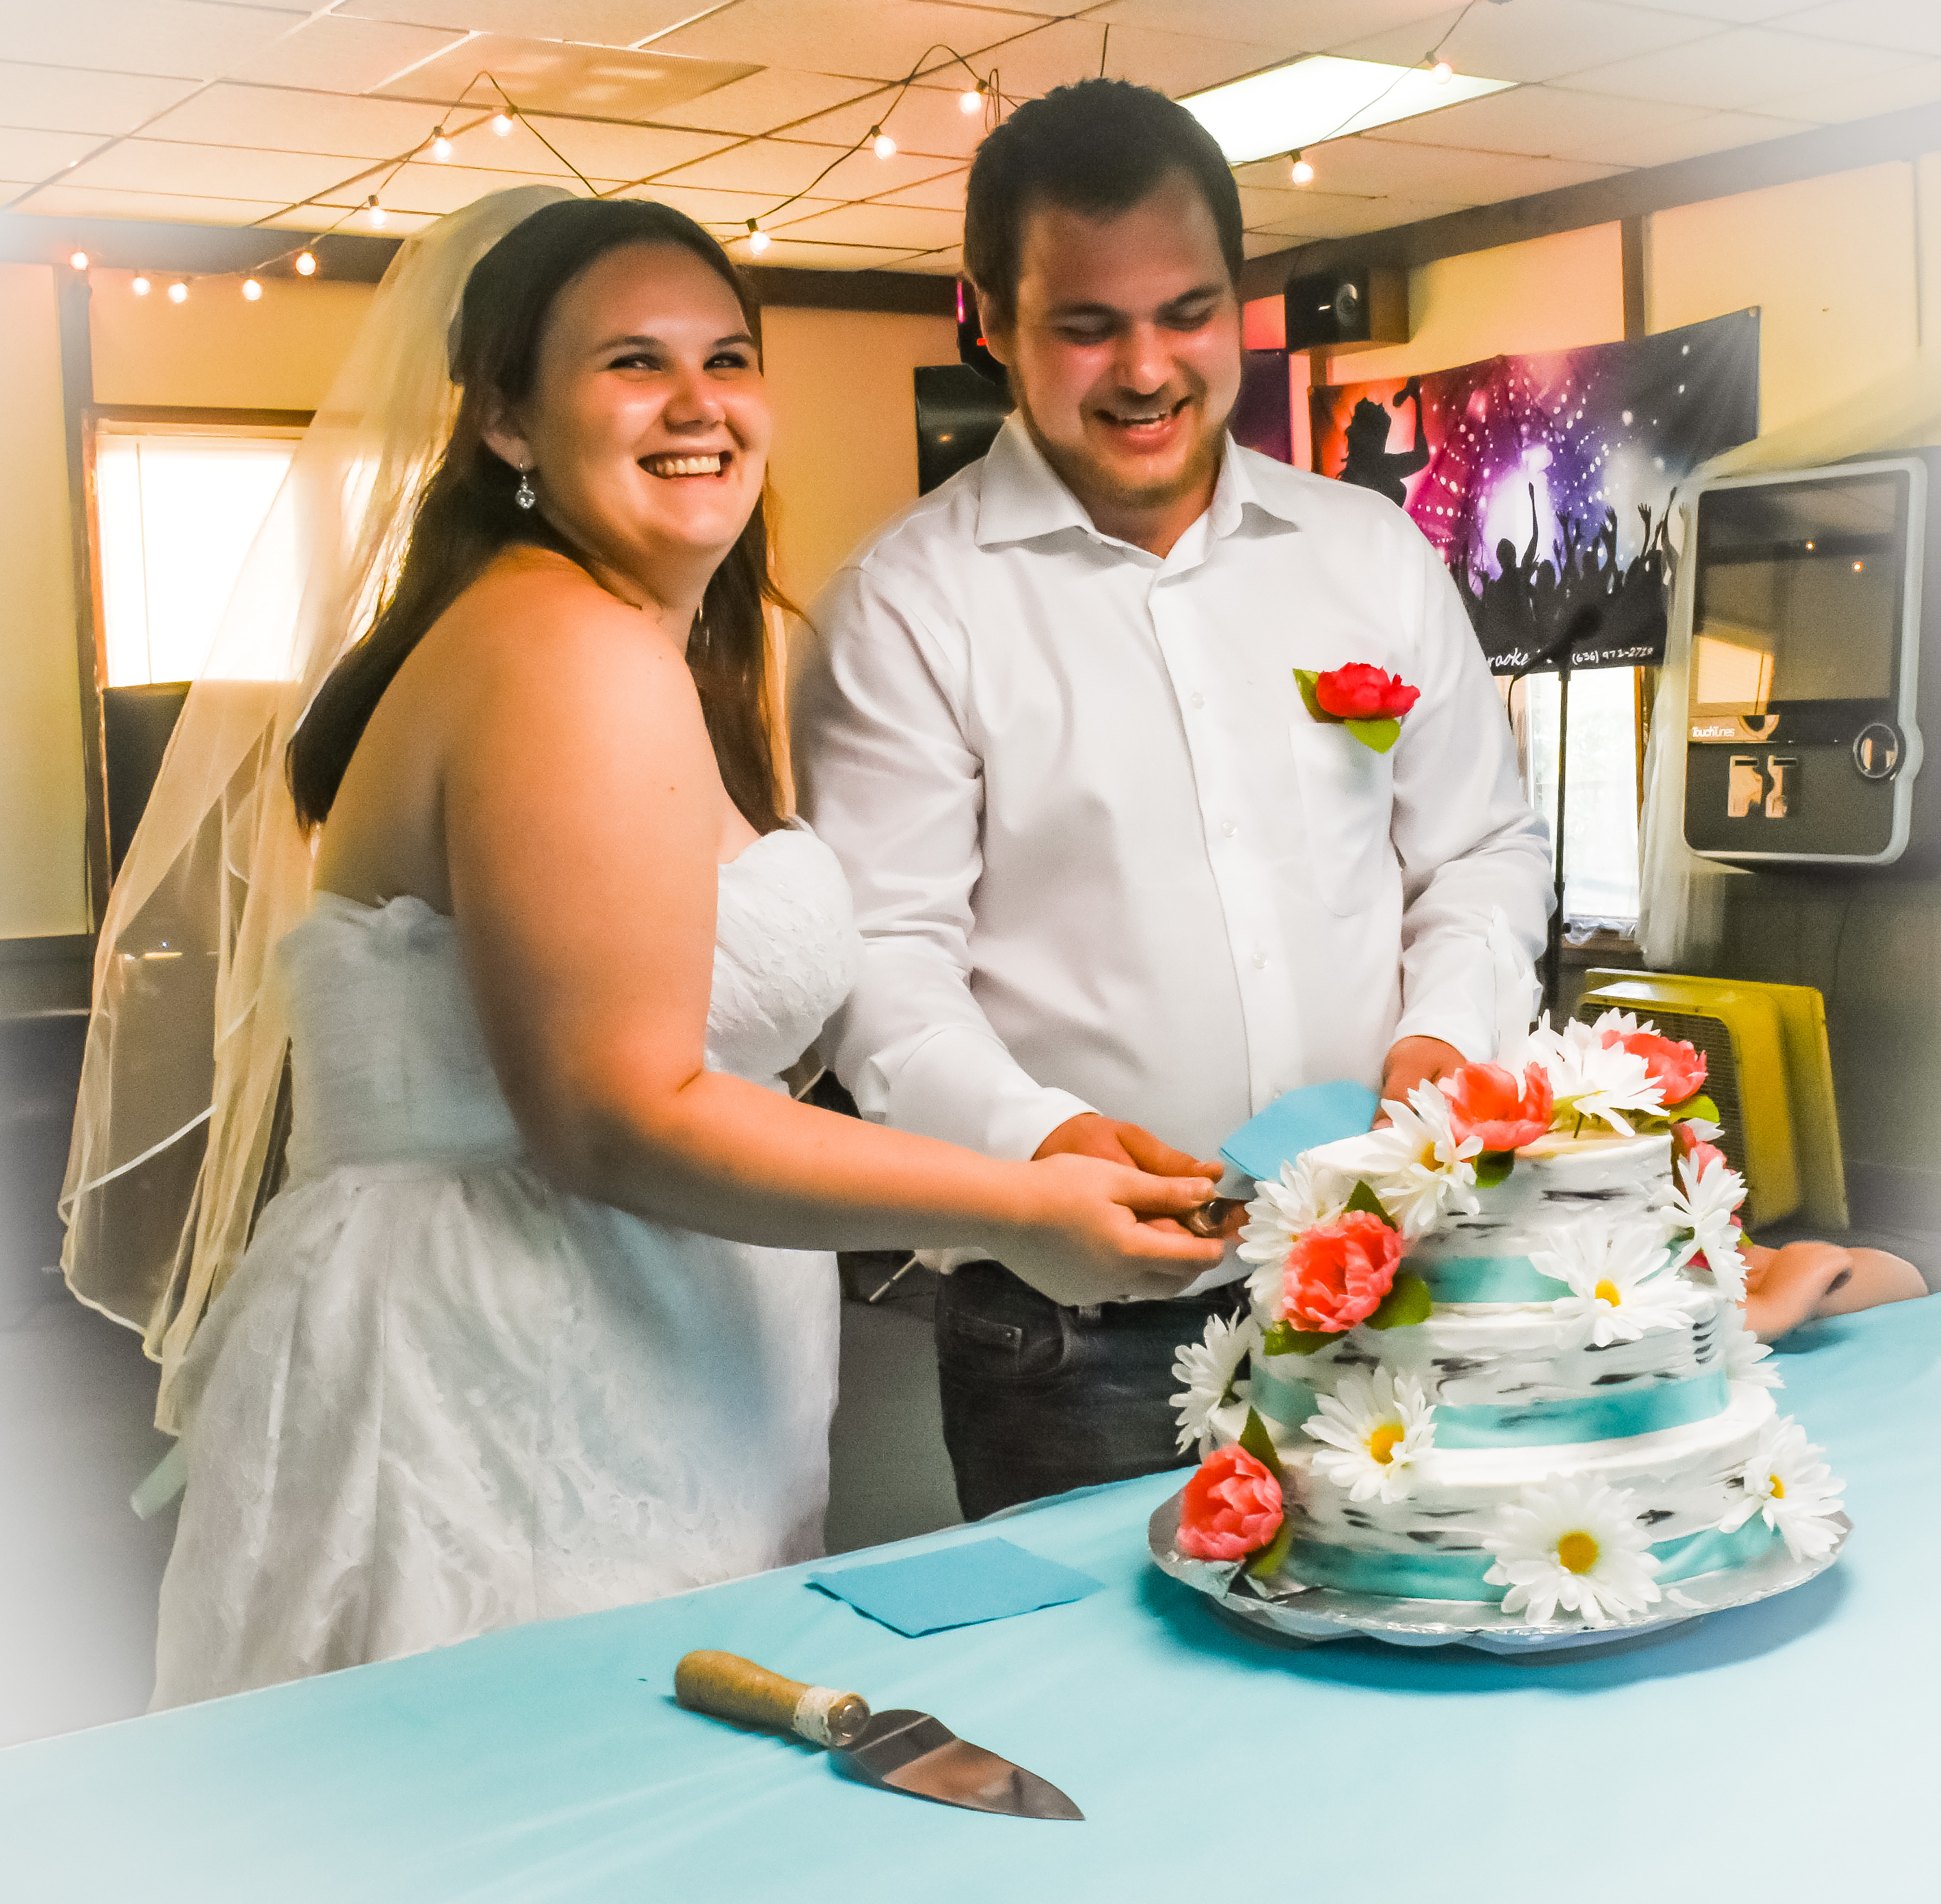 Angelina & Tylor Cutting the Cake